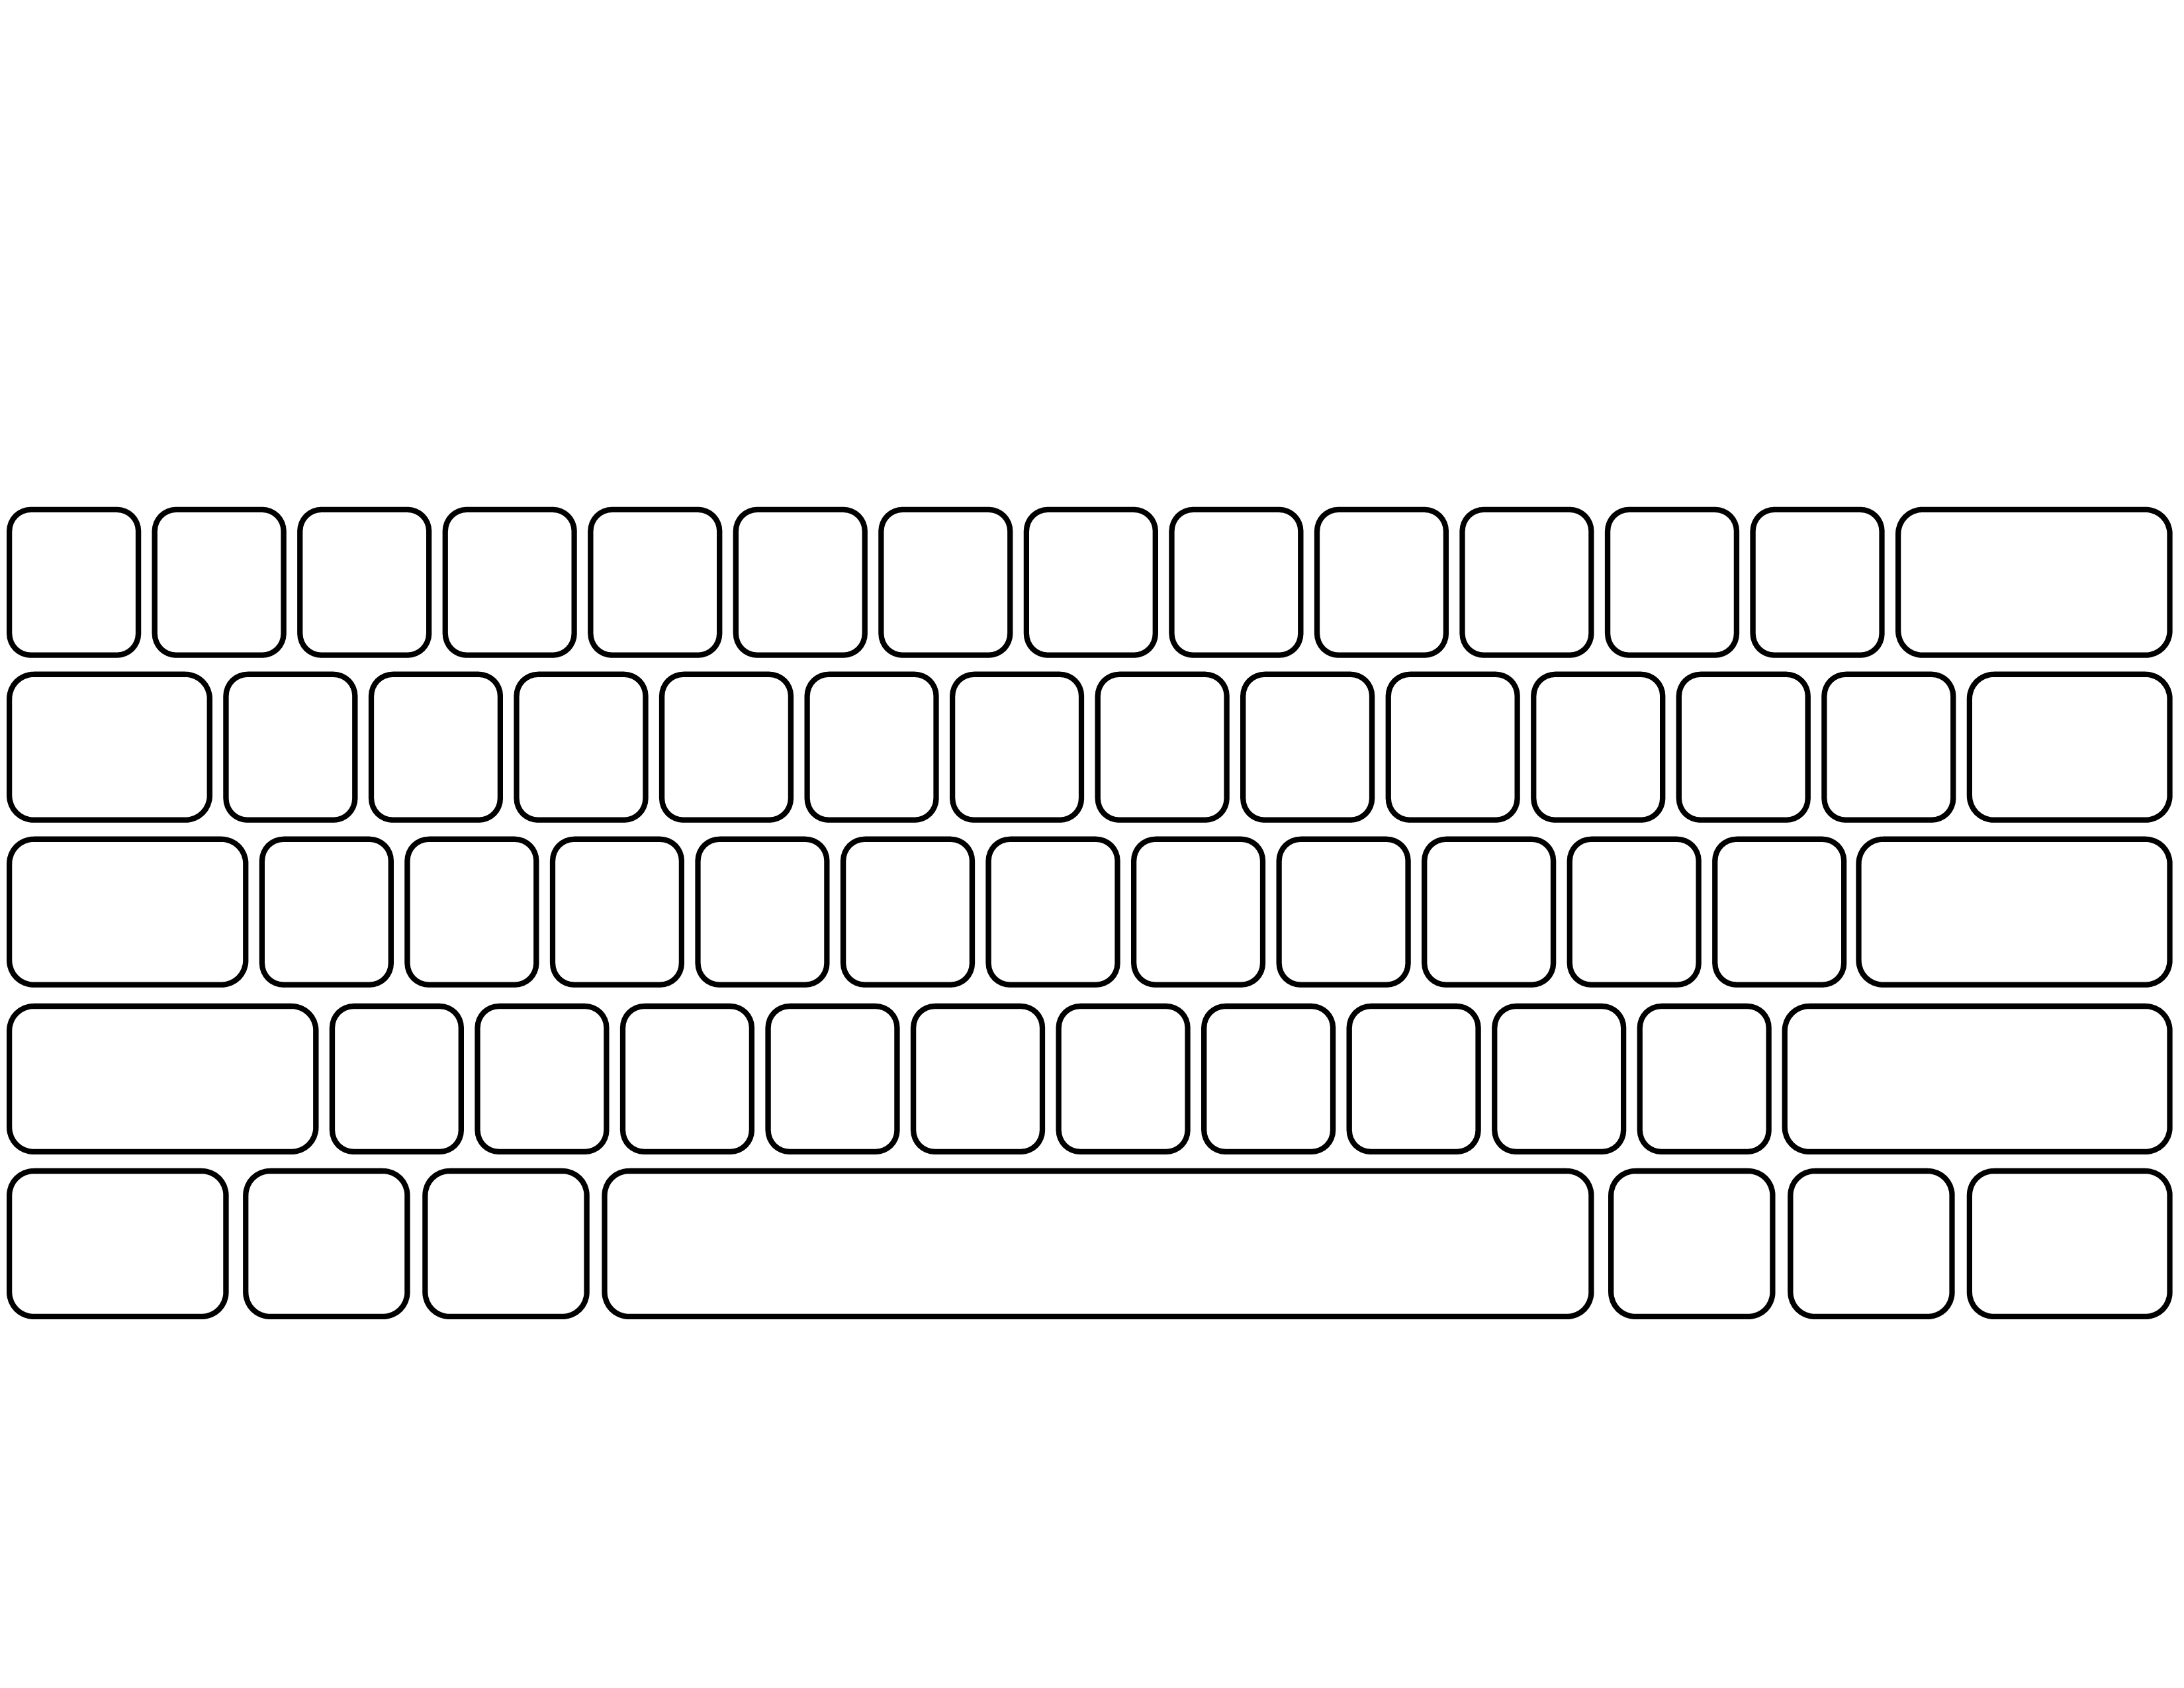 Unforgettable image with keyboard template printable